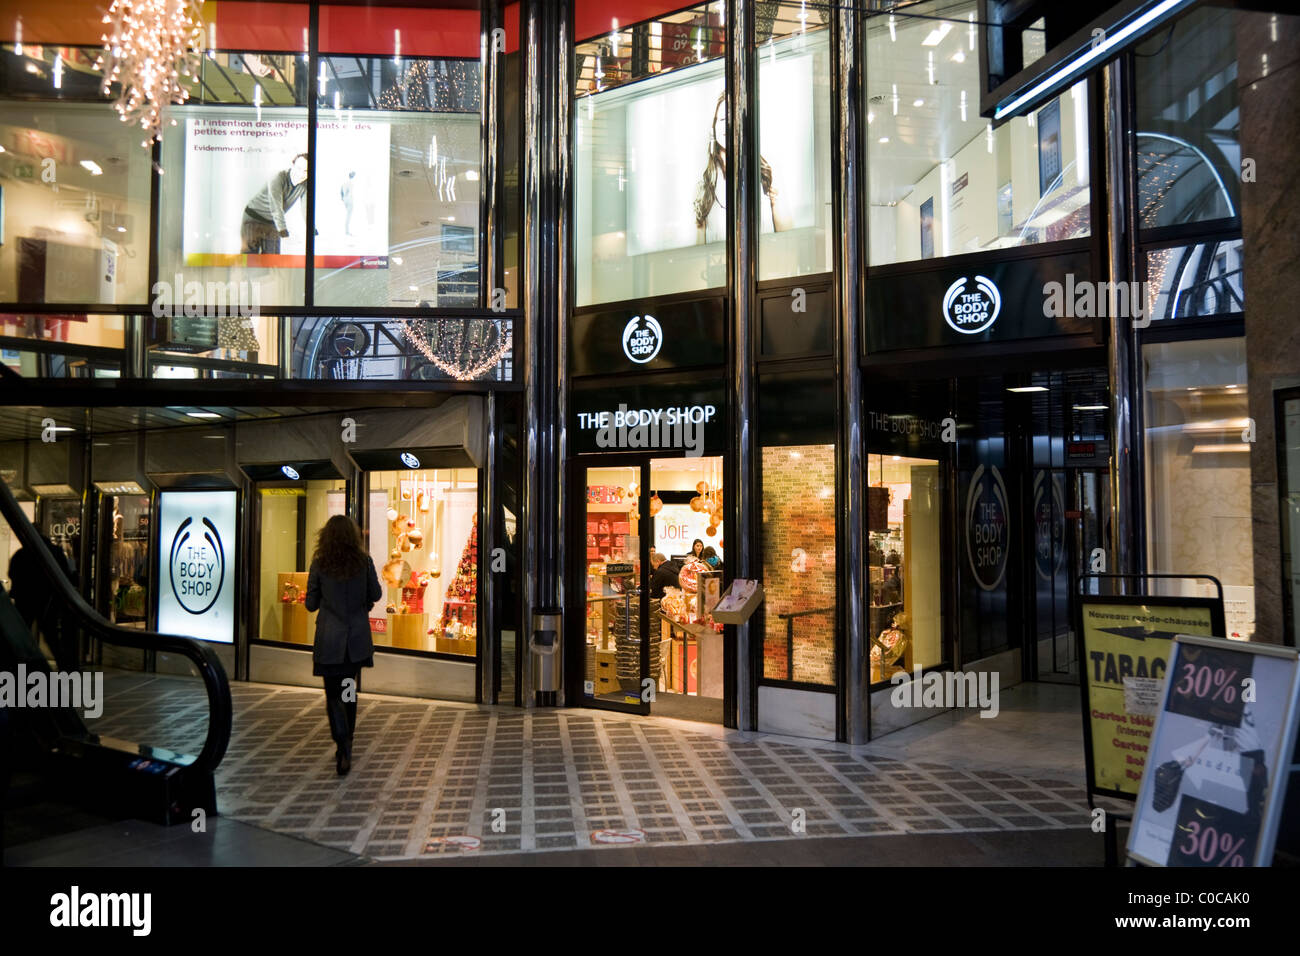 Branch of The Body Shop / Bodyshop in Confederation Centre, Geneva. Swiss shopping mall / arcade / shops in / Geneve Stock Photo